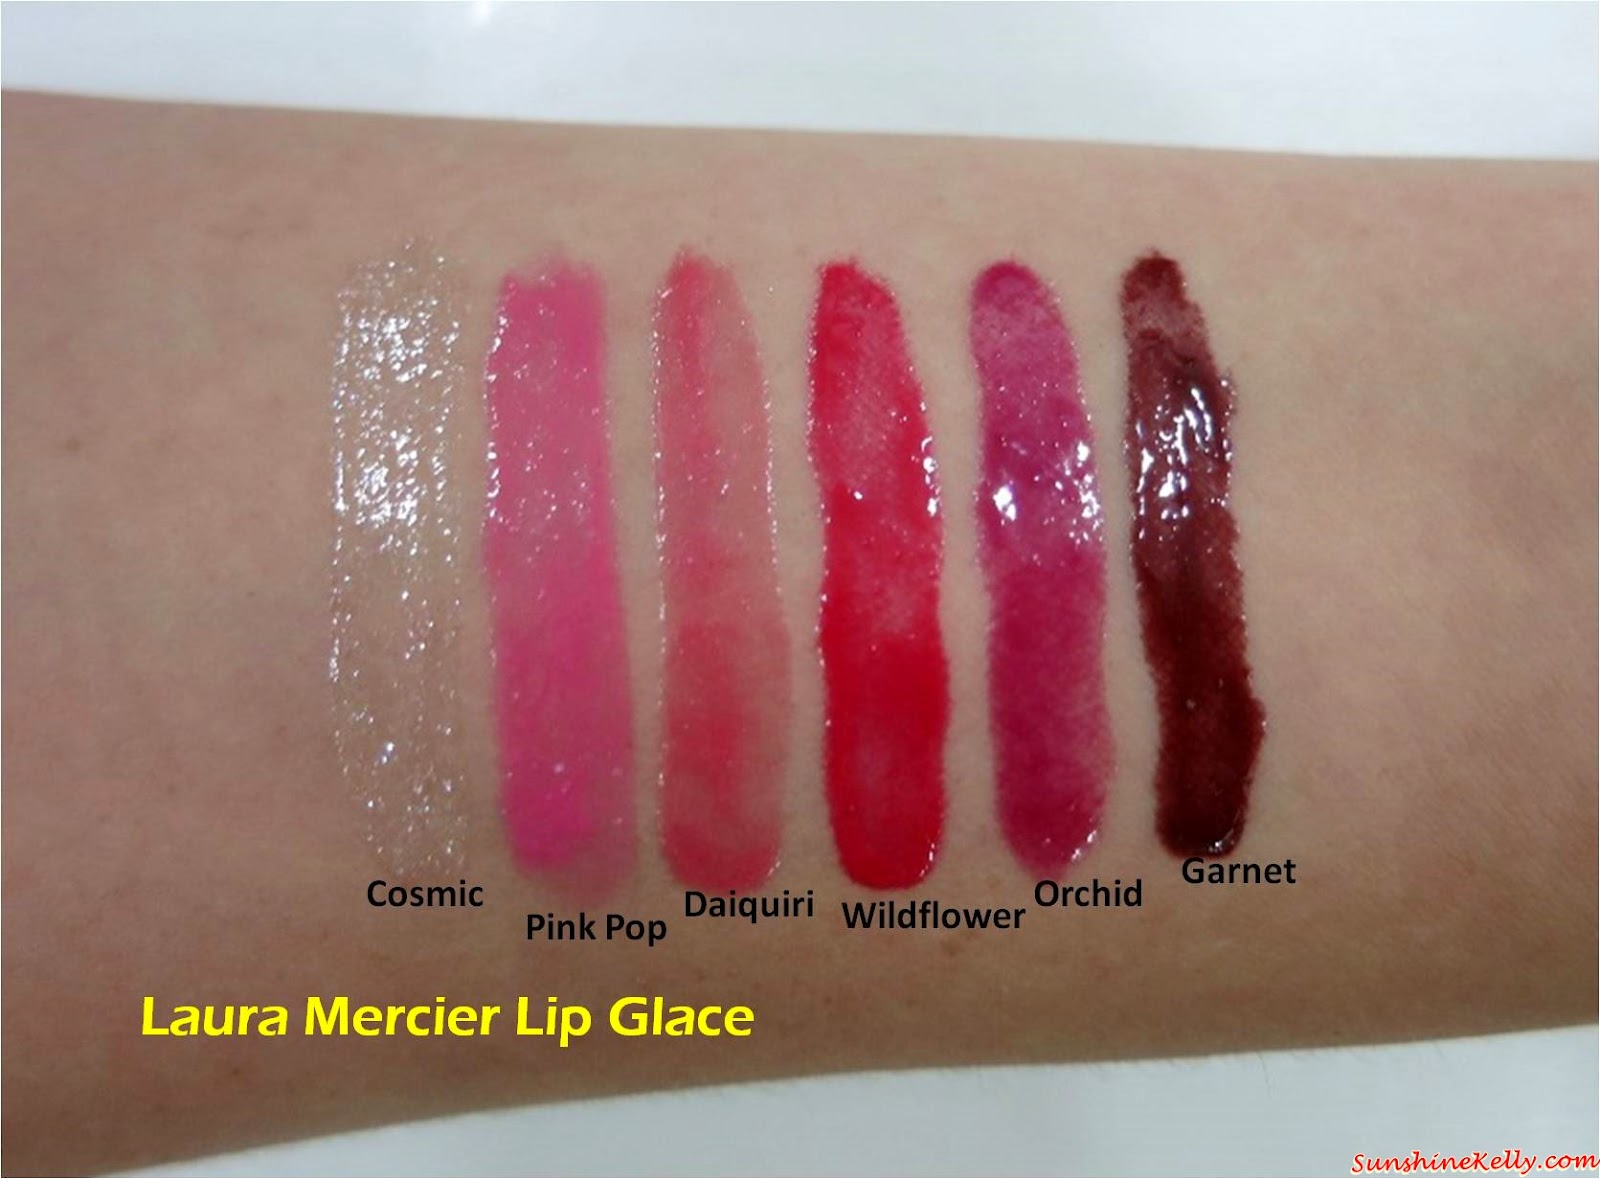 Laura Mercier Lip Glace Review, Laura Mercier, Lip Glace, Makeup Review, Lip Gloss, Cosmic, Pink Pop, Daiquiri, Wildflower, Orchid, Garnet